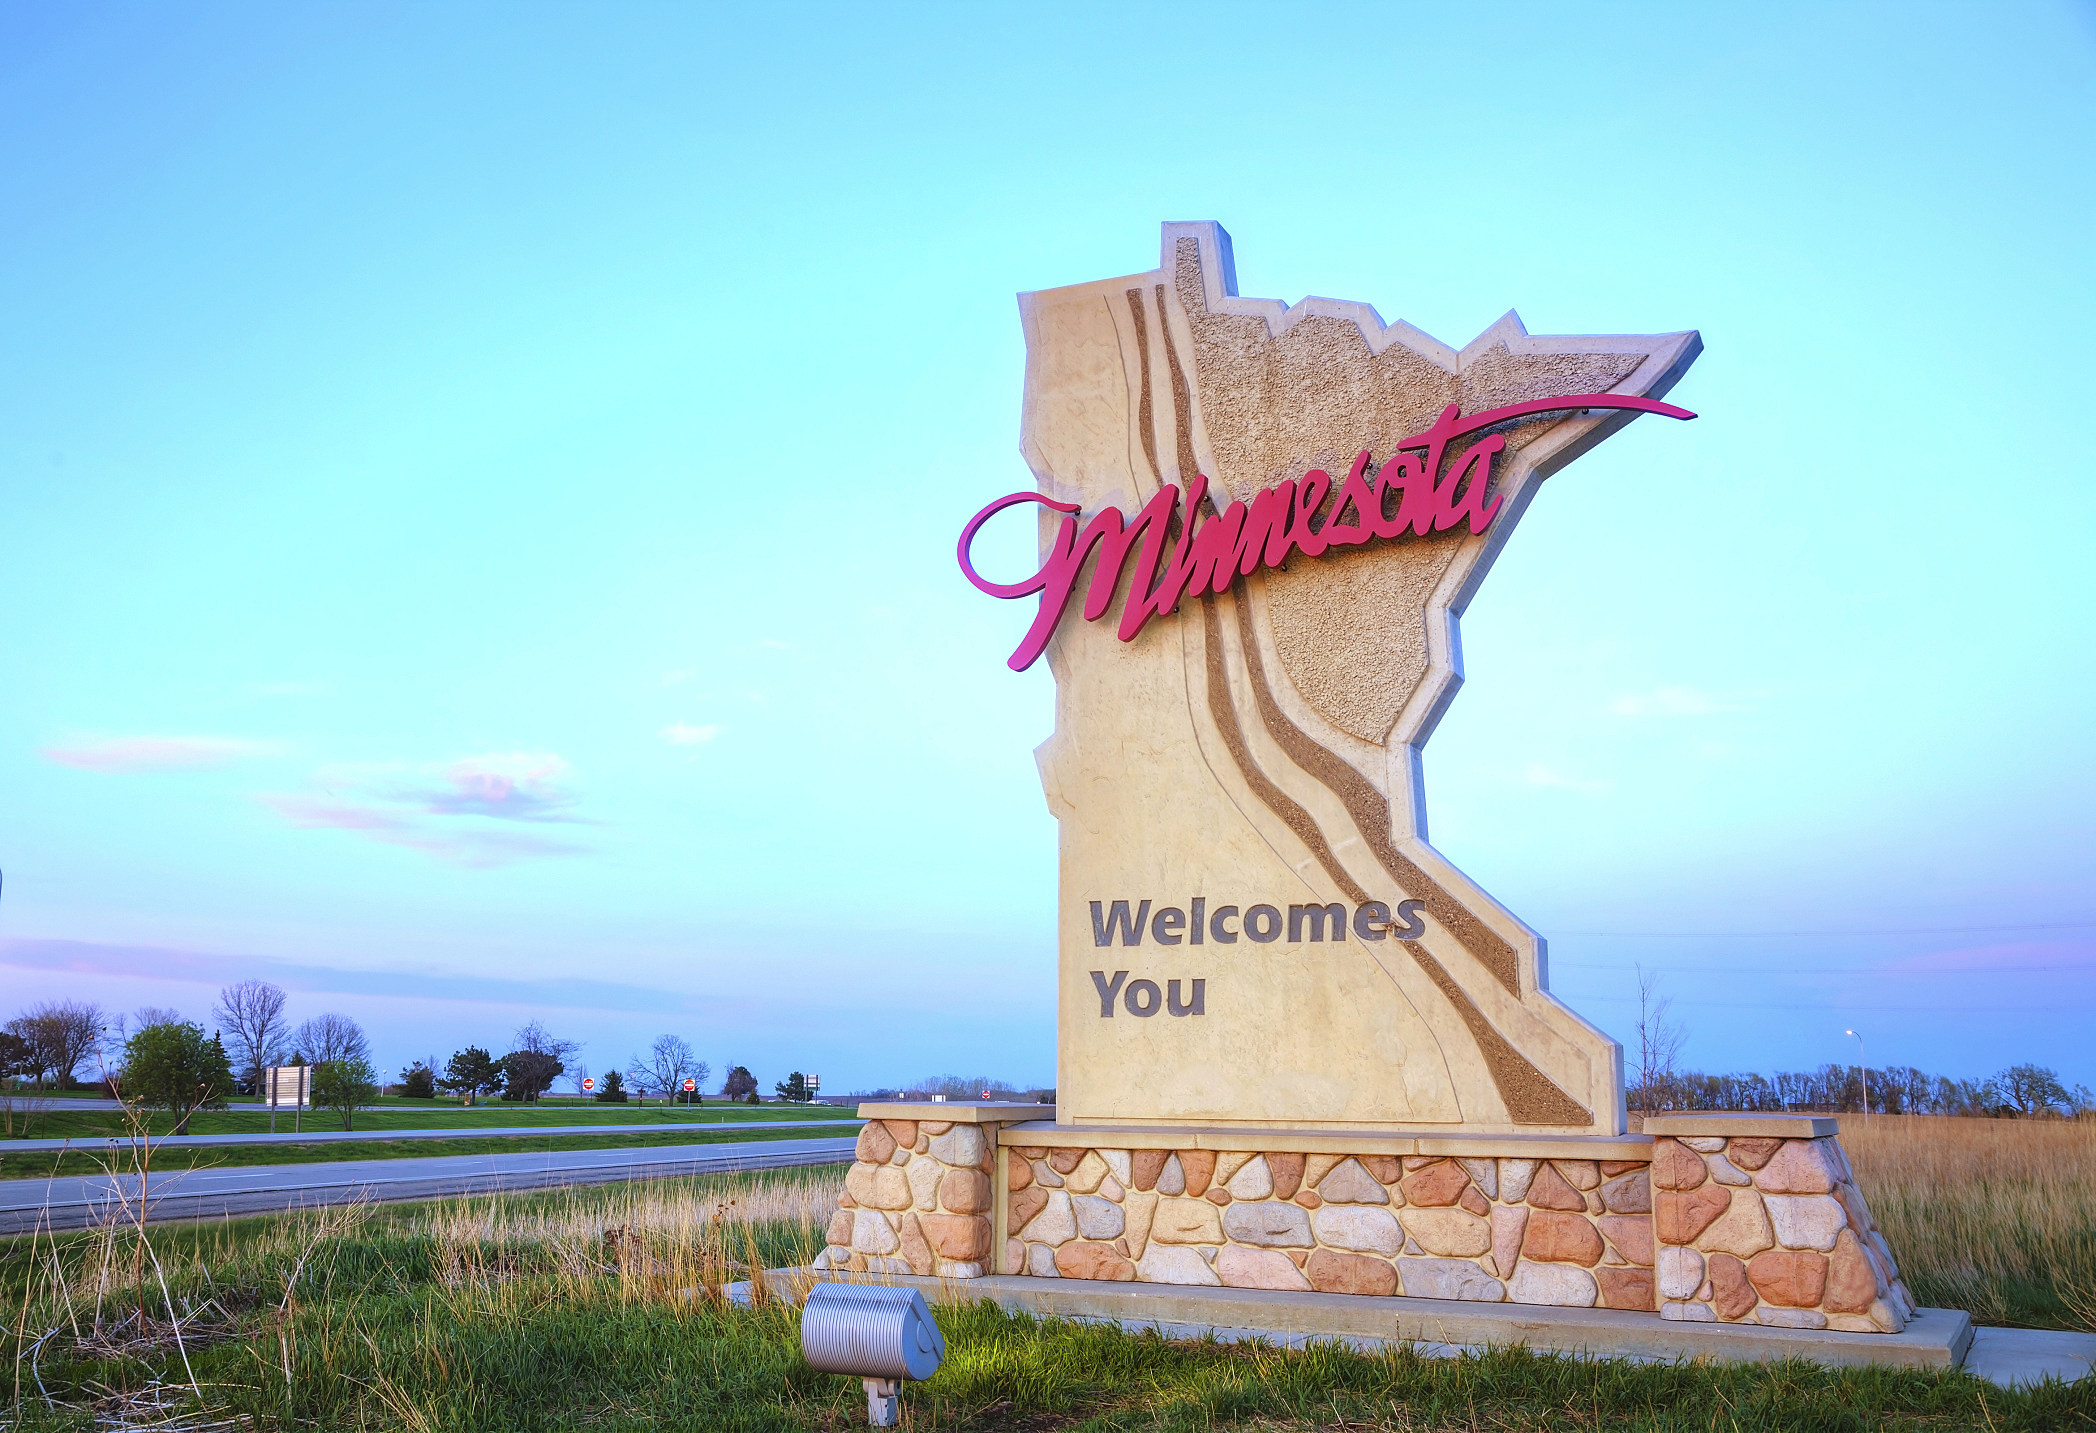 Minnesota One of Best States in Country According to New Rankings